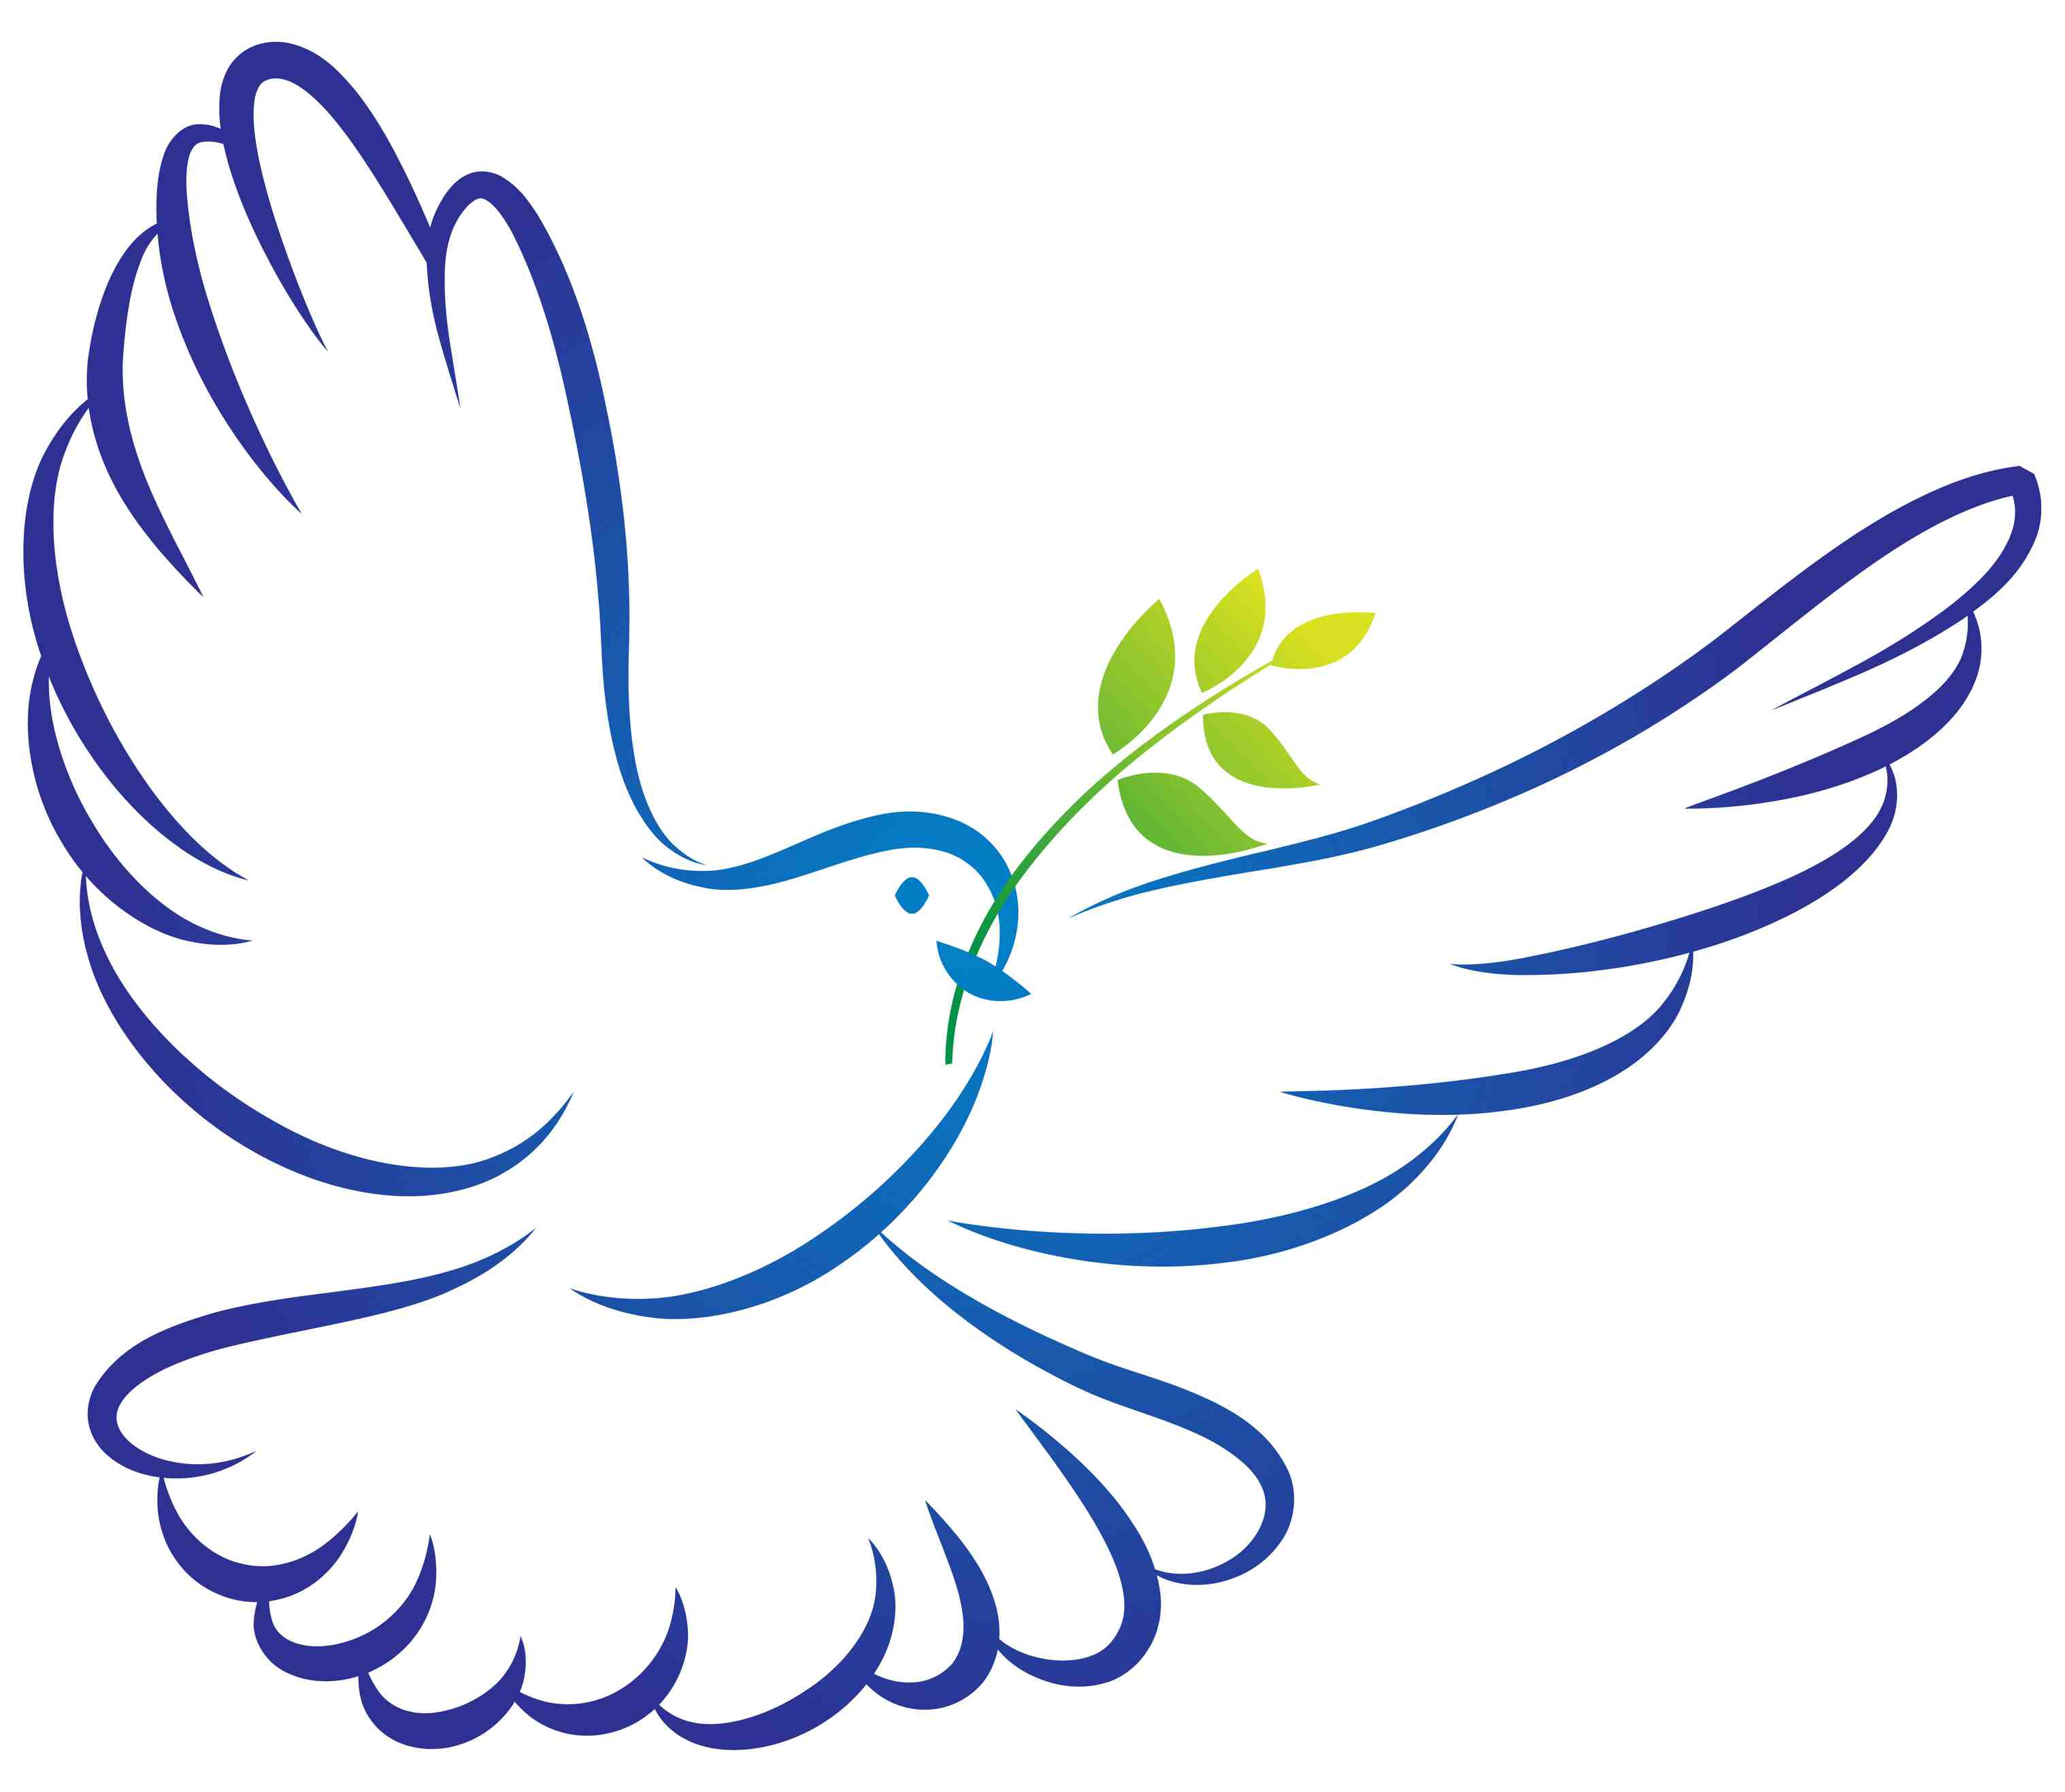 3035x2634 White Dove Clipart Flight Silhouette